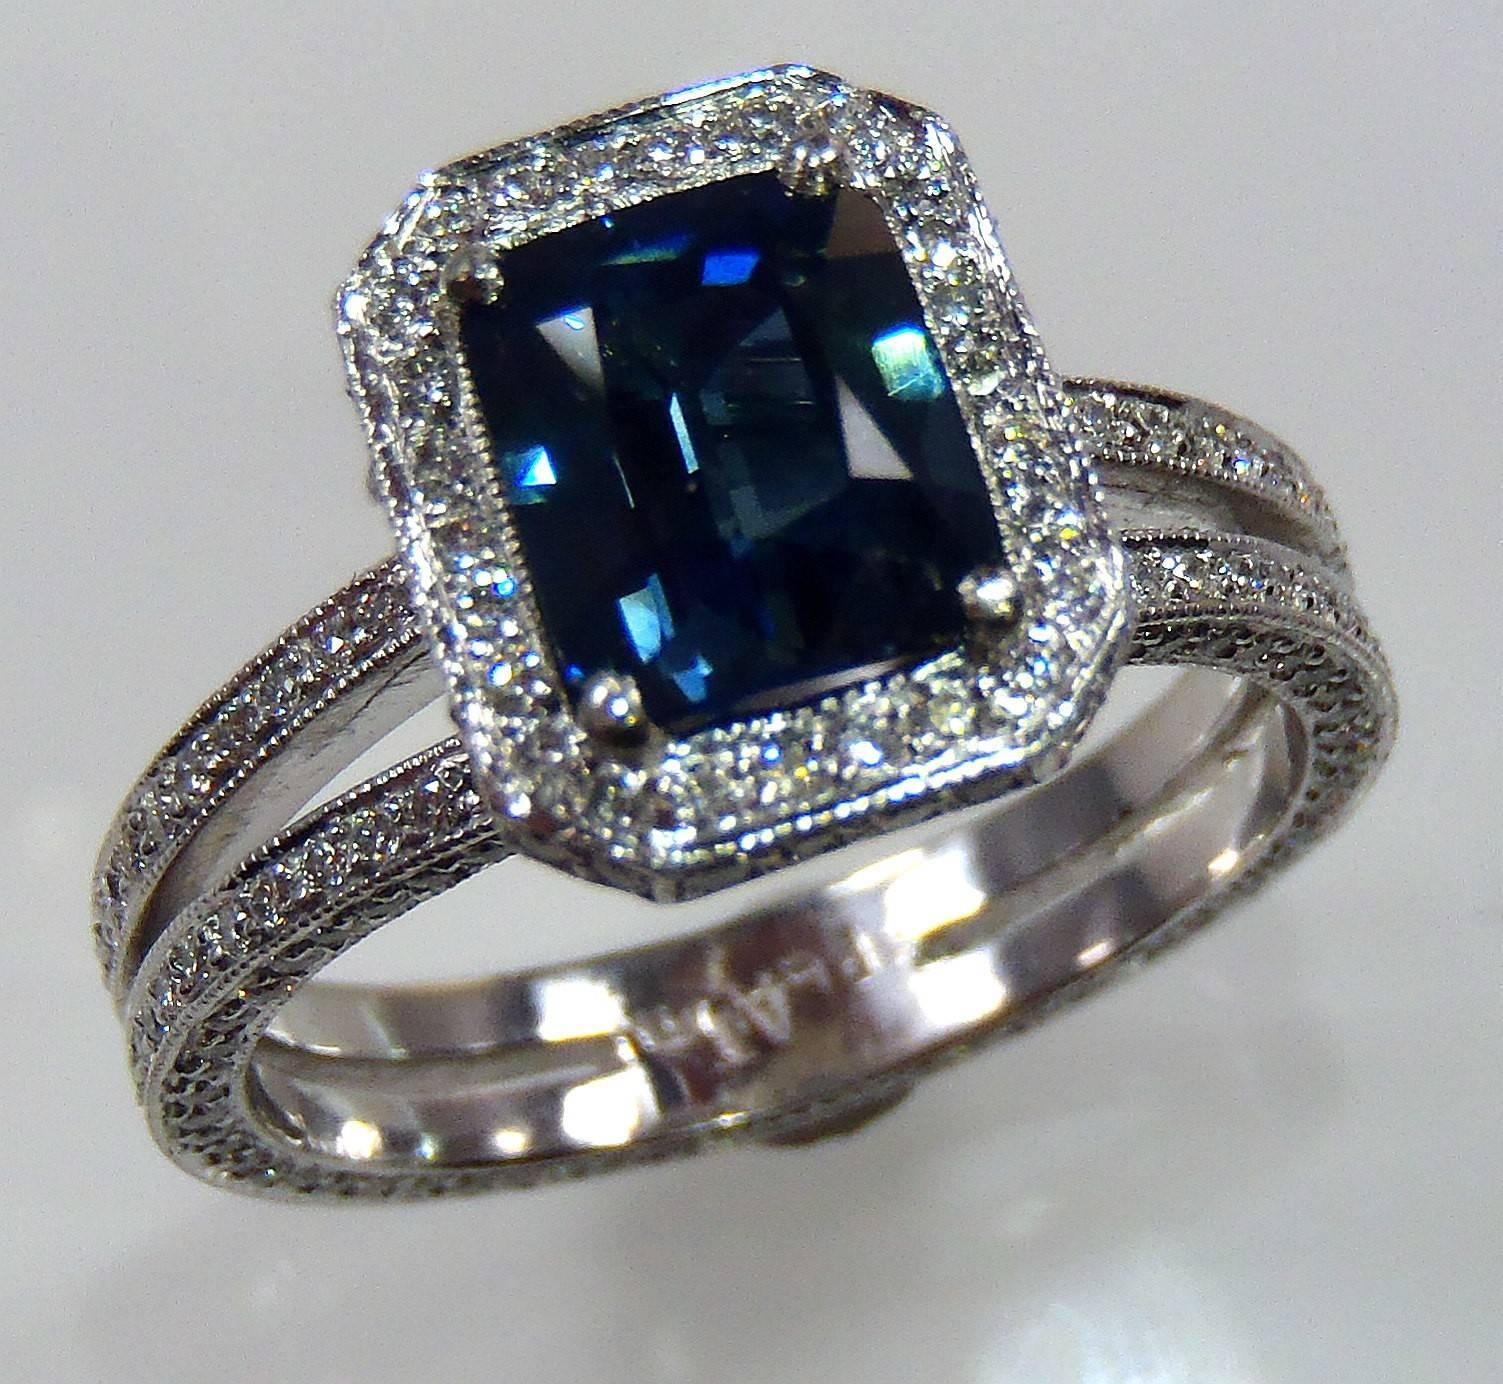 Ceylon Sapphire Engagement Ring, Aigs Certified Platinum 3.06 Tcw Intended For Emerald Sapphire Engagement Rings (Gallery 13 of 15)